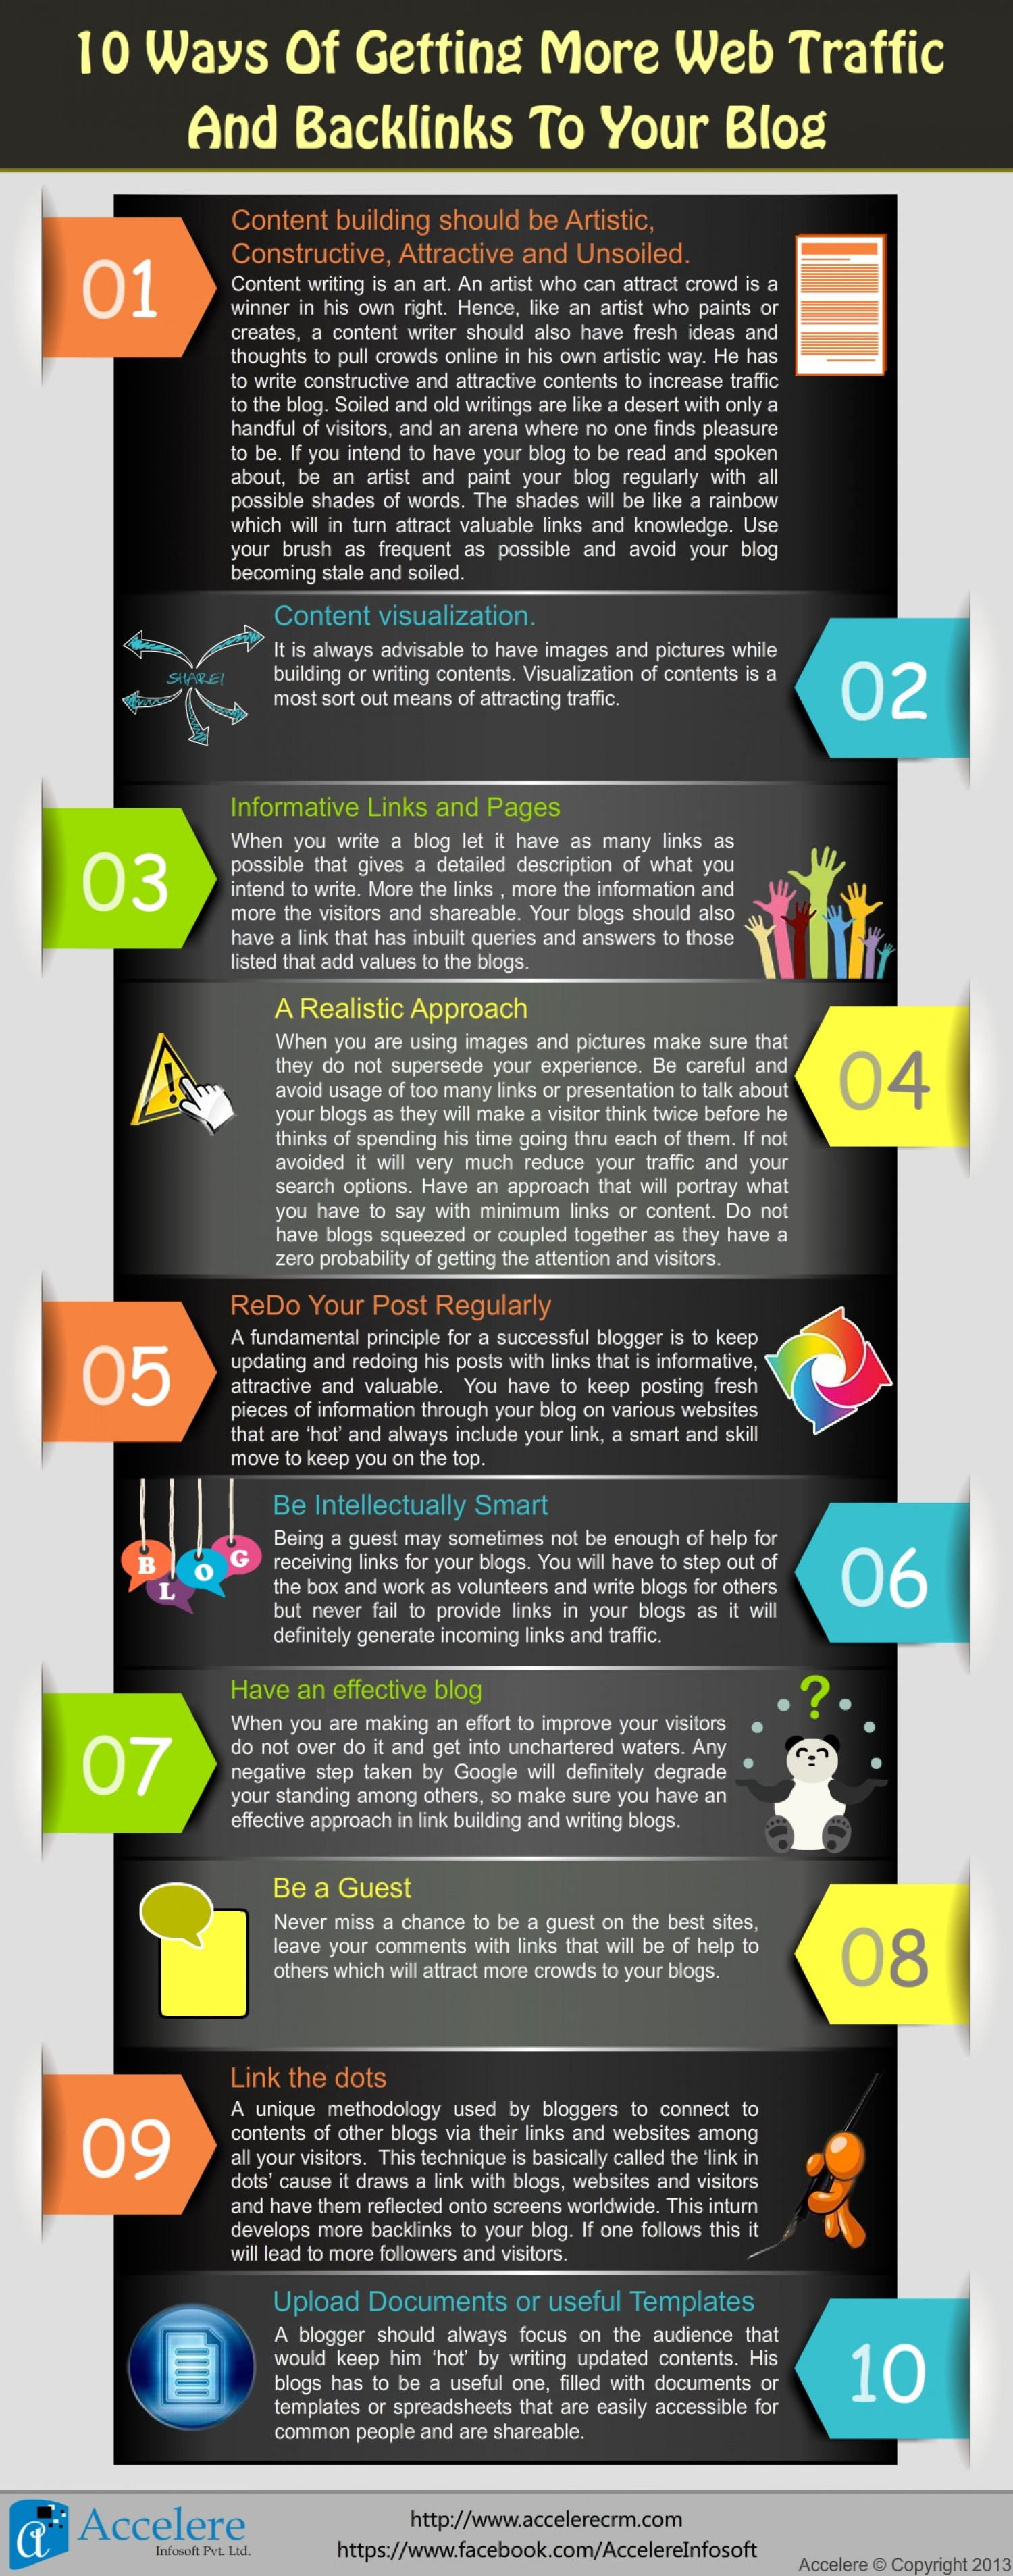 10 Ways Of Getting More Web Traffic And Backlinks To Your Blog Infographic